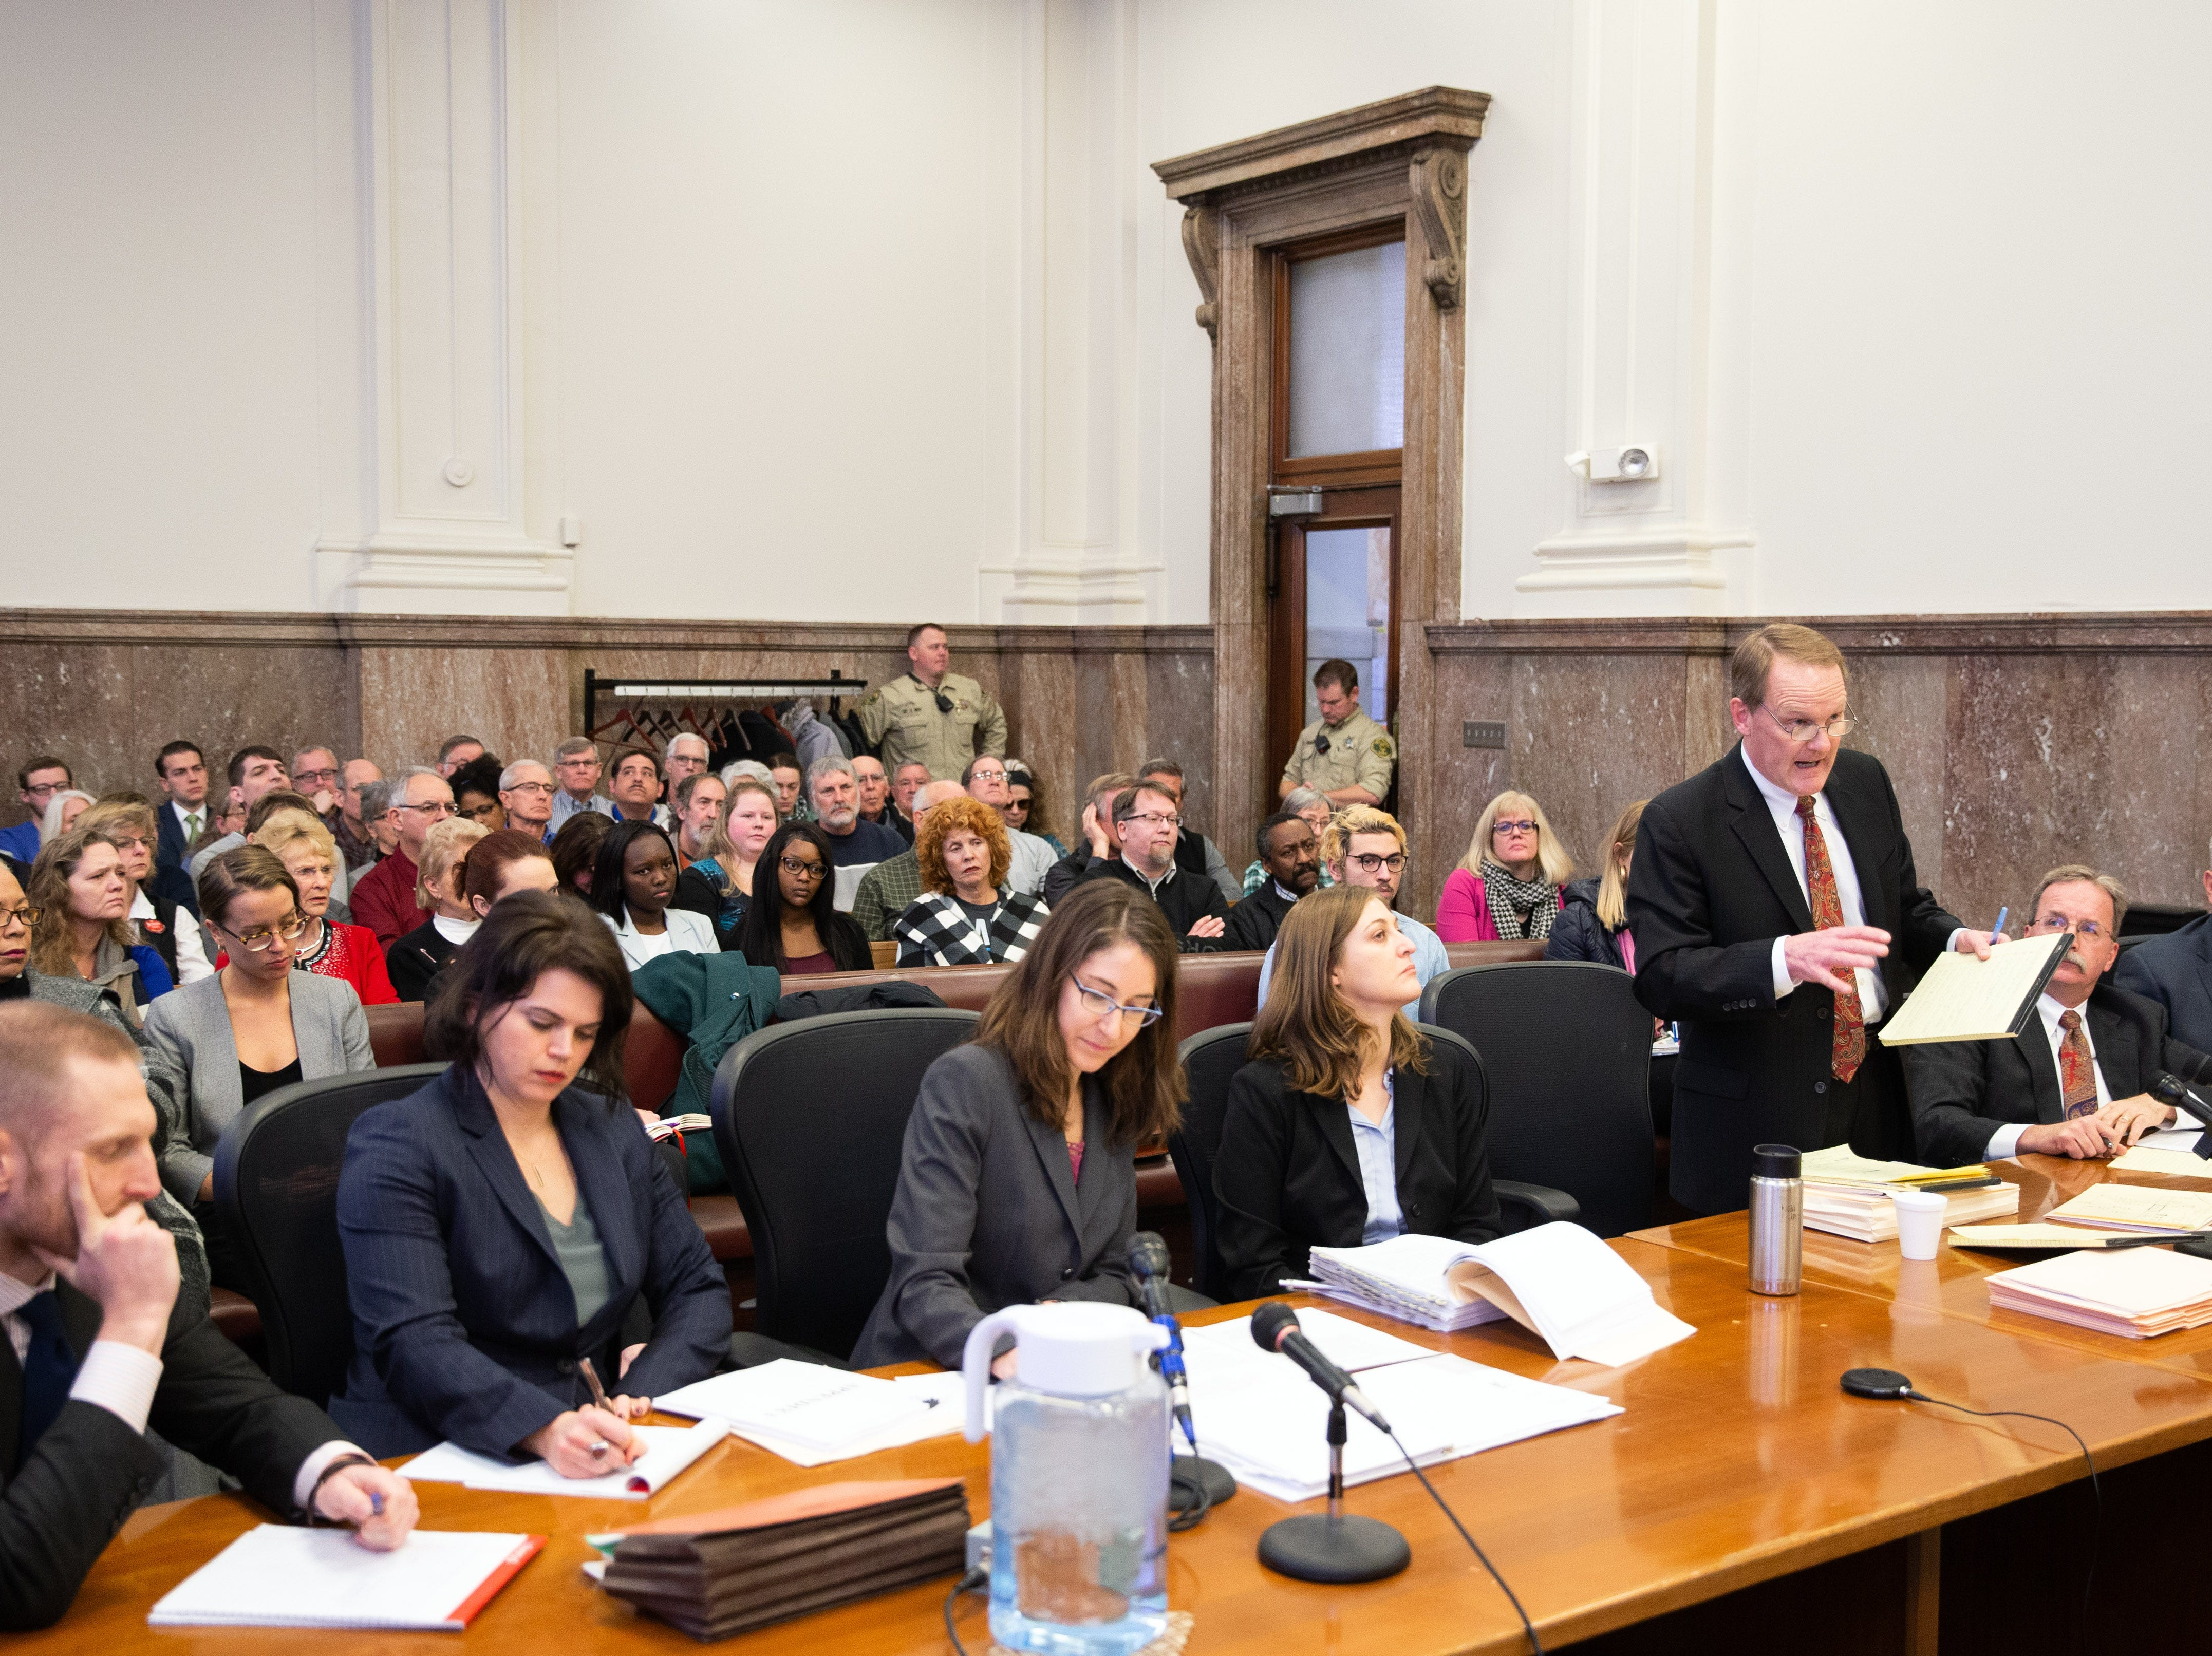 Activists pack Iowa courtroom as judge hears arguments over tossing 'fetal heartbeat' abortion law